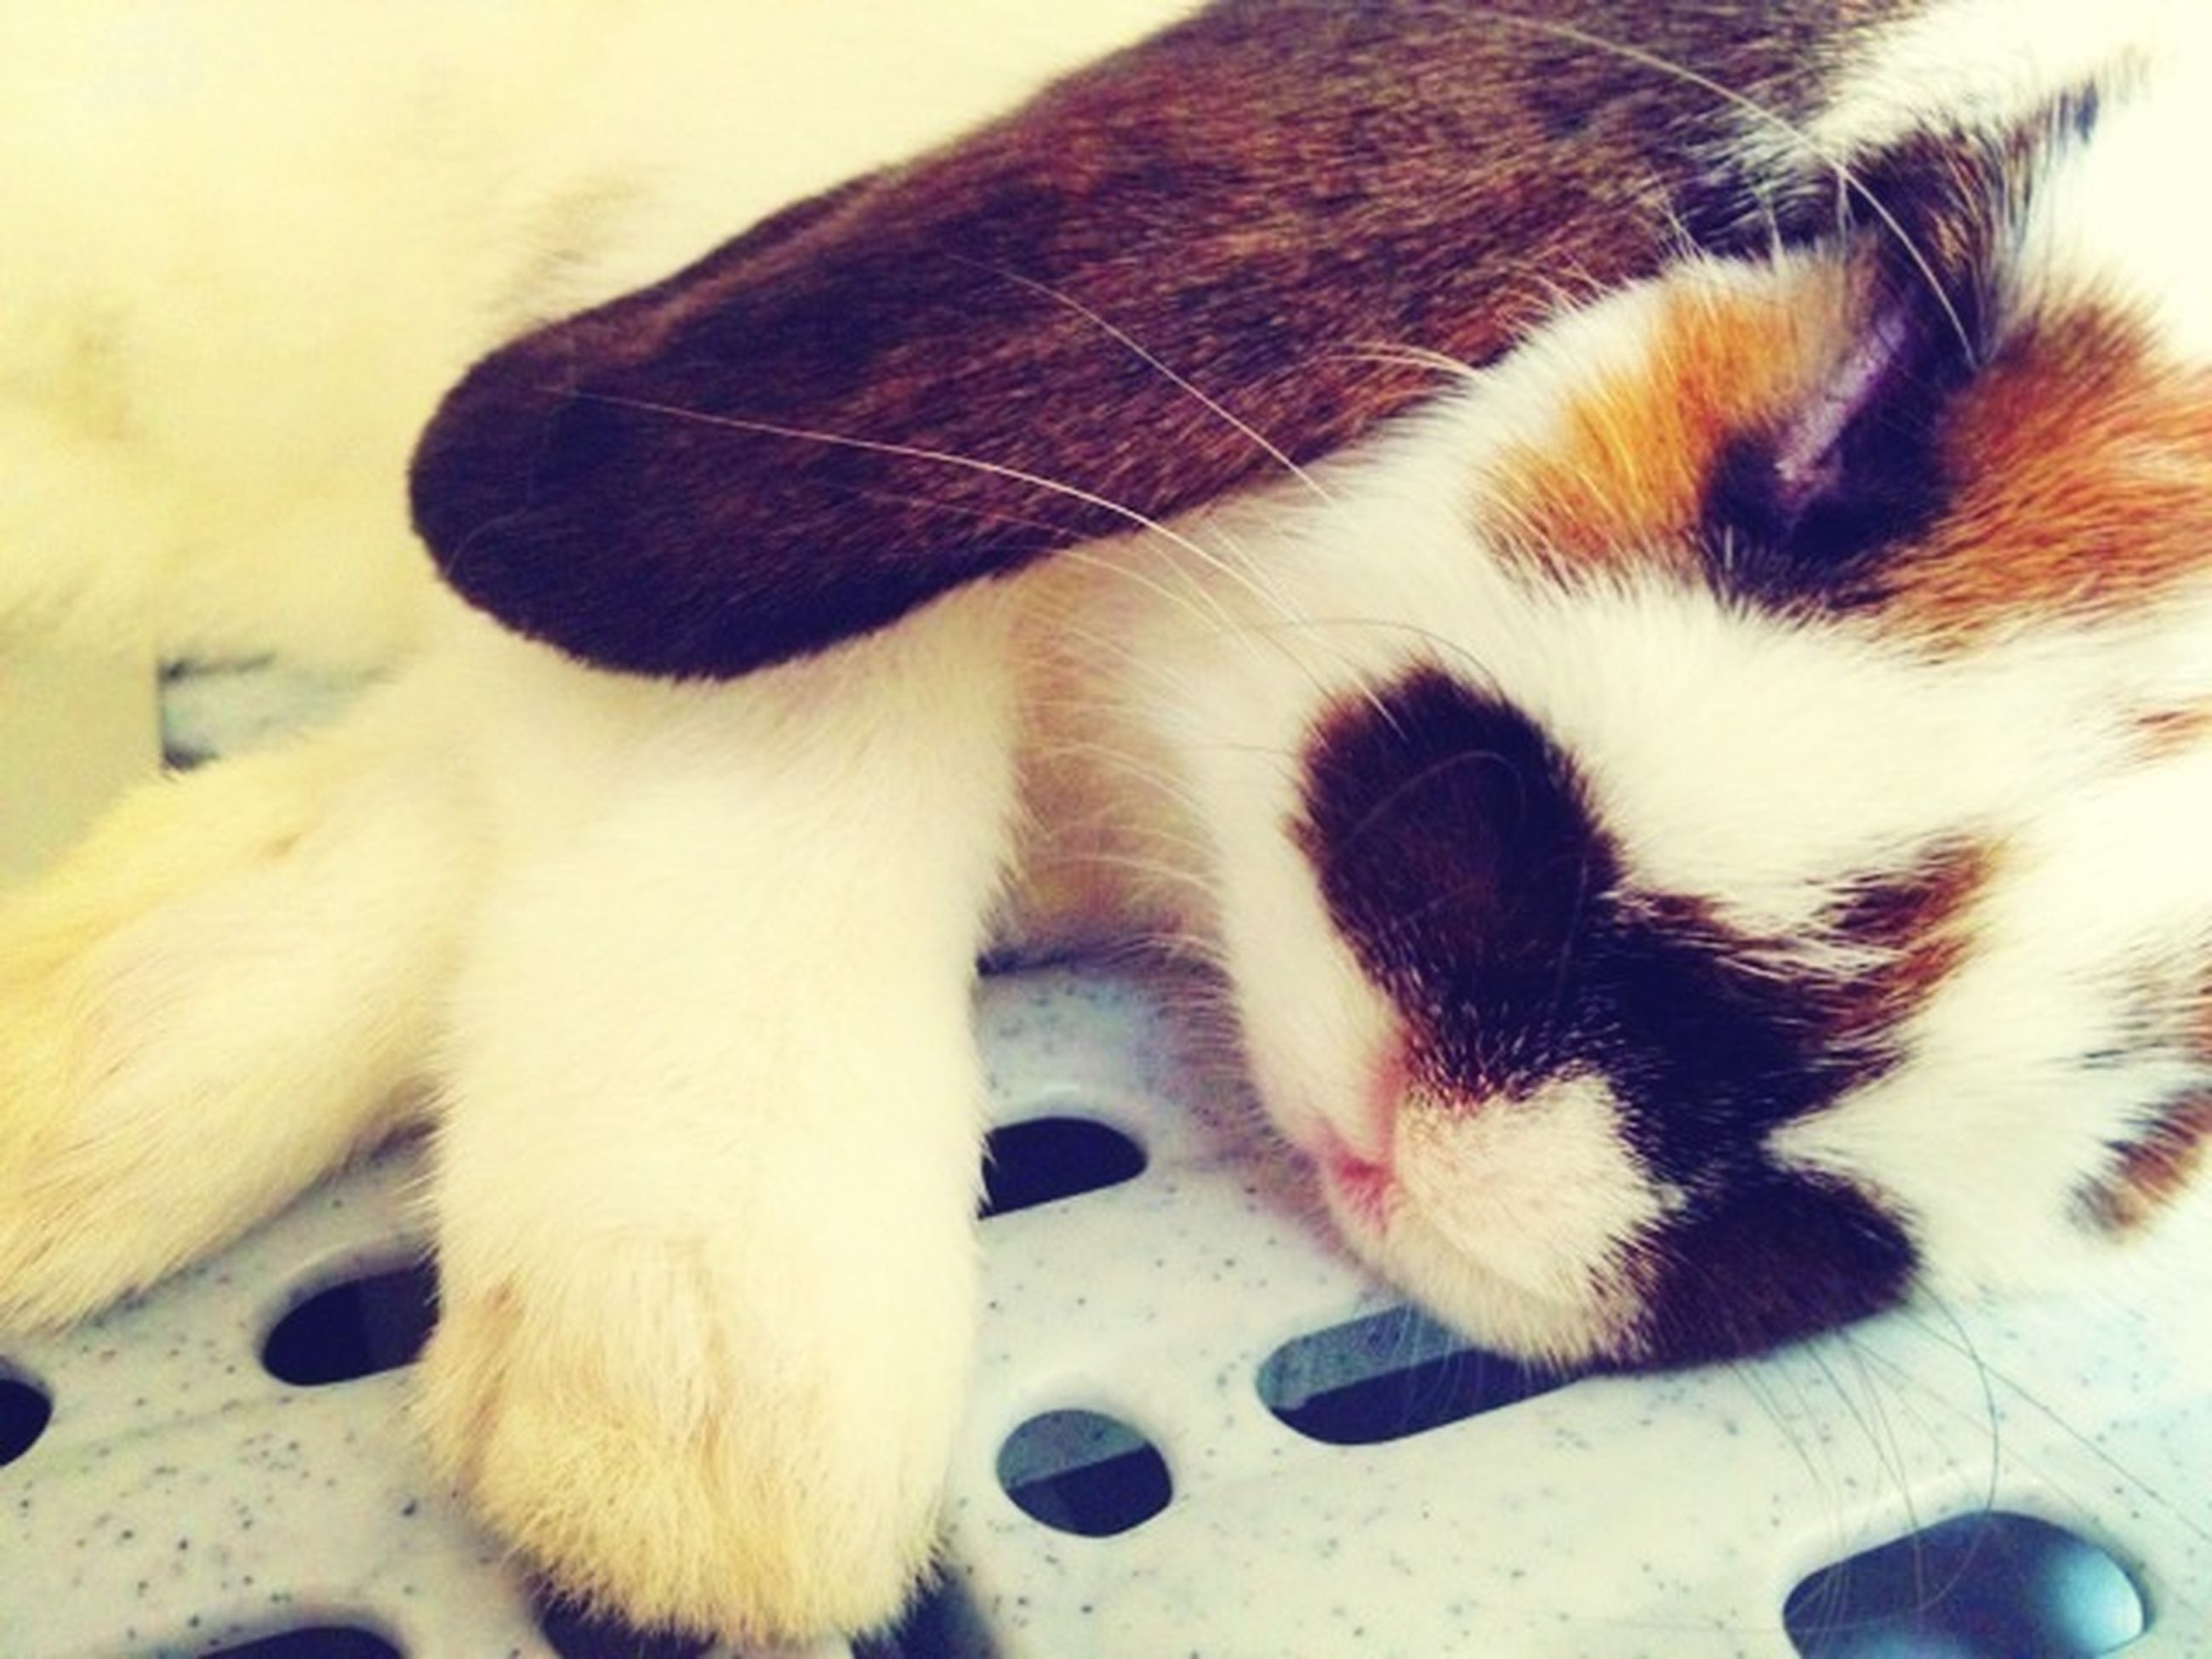 animal themes, domestic animals, one animal, mammal, pets, domestic cat, feline, cat, indoors, close-up, sleeping, whisker, relaxation, lying down, resting, eyes closed, animal head, animal body part, white color, no people